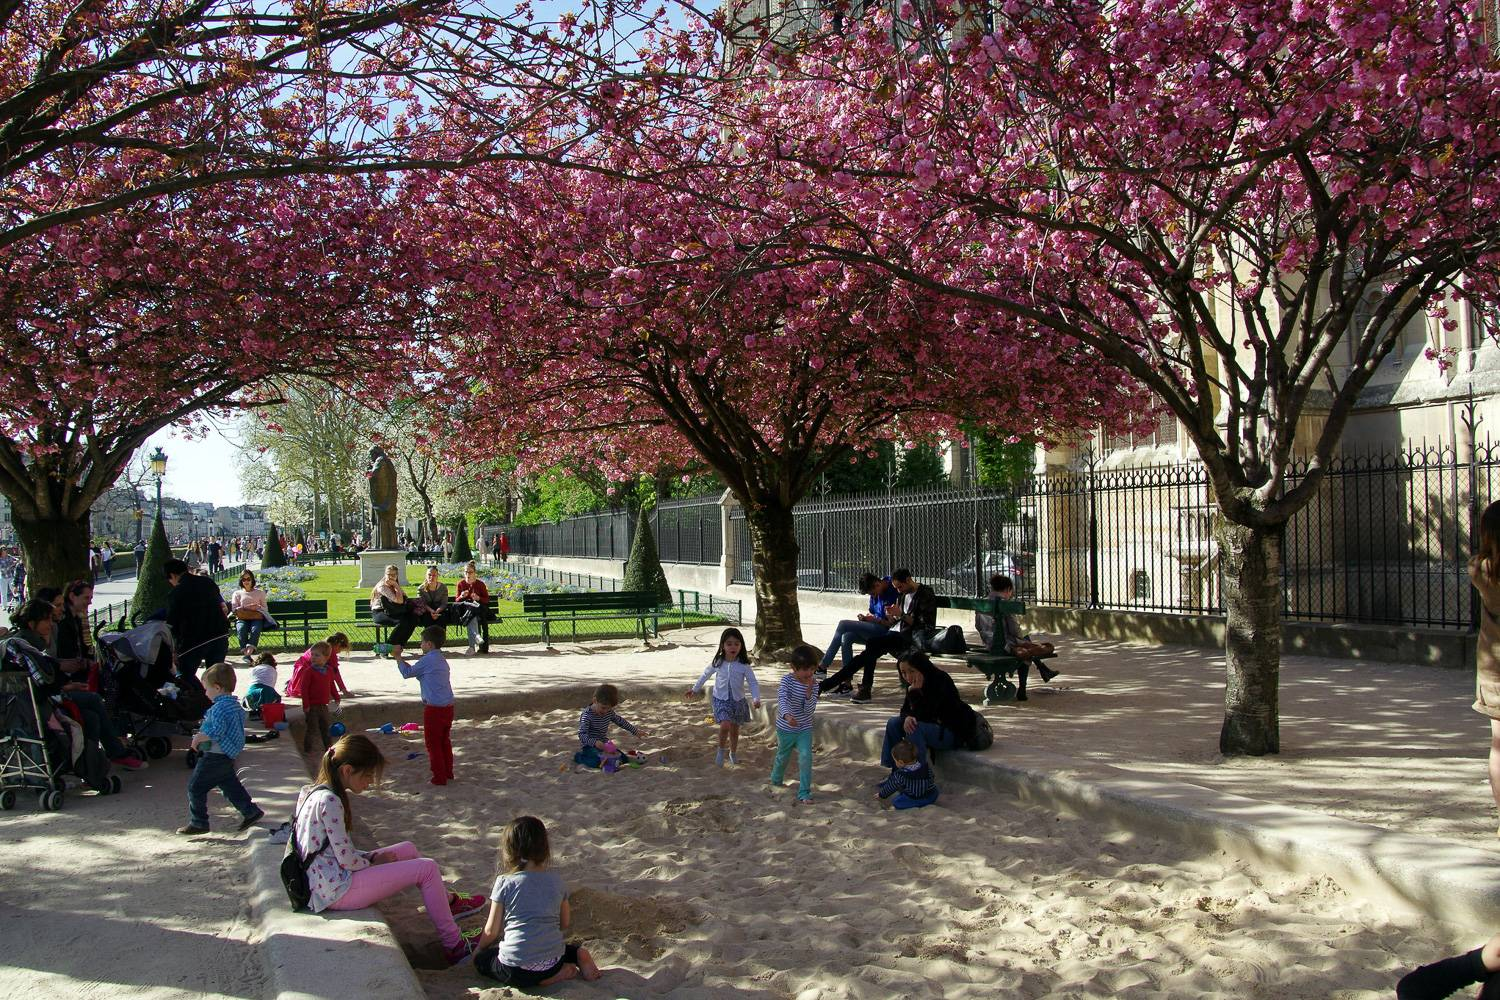 Image of children playing in a Paris park in the spring.